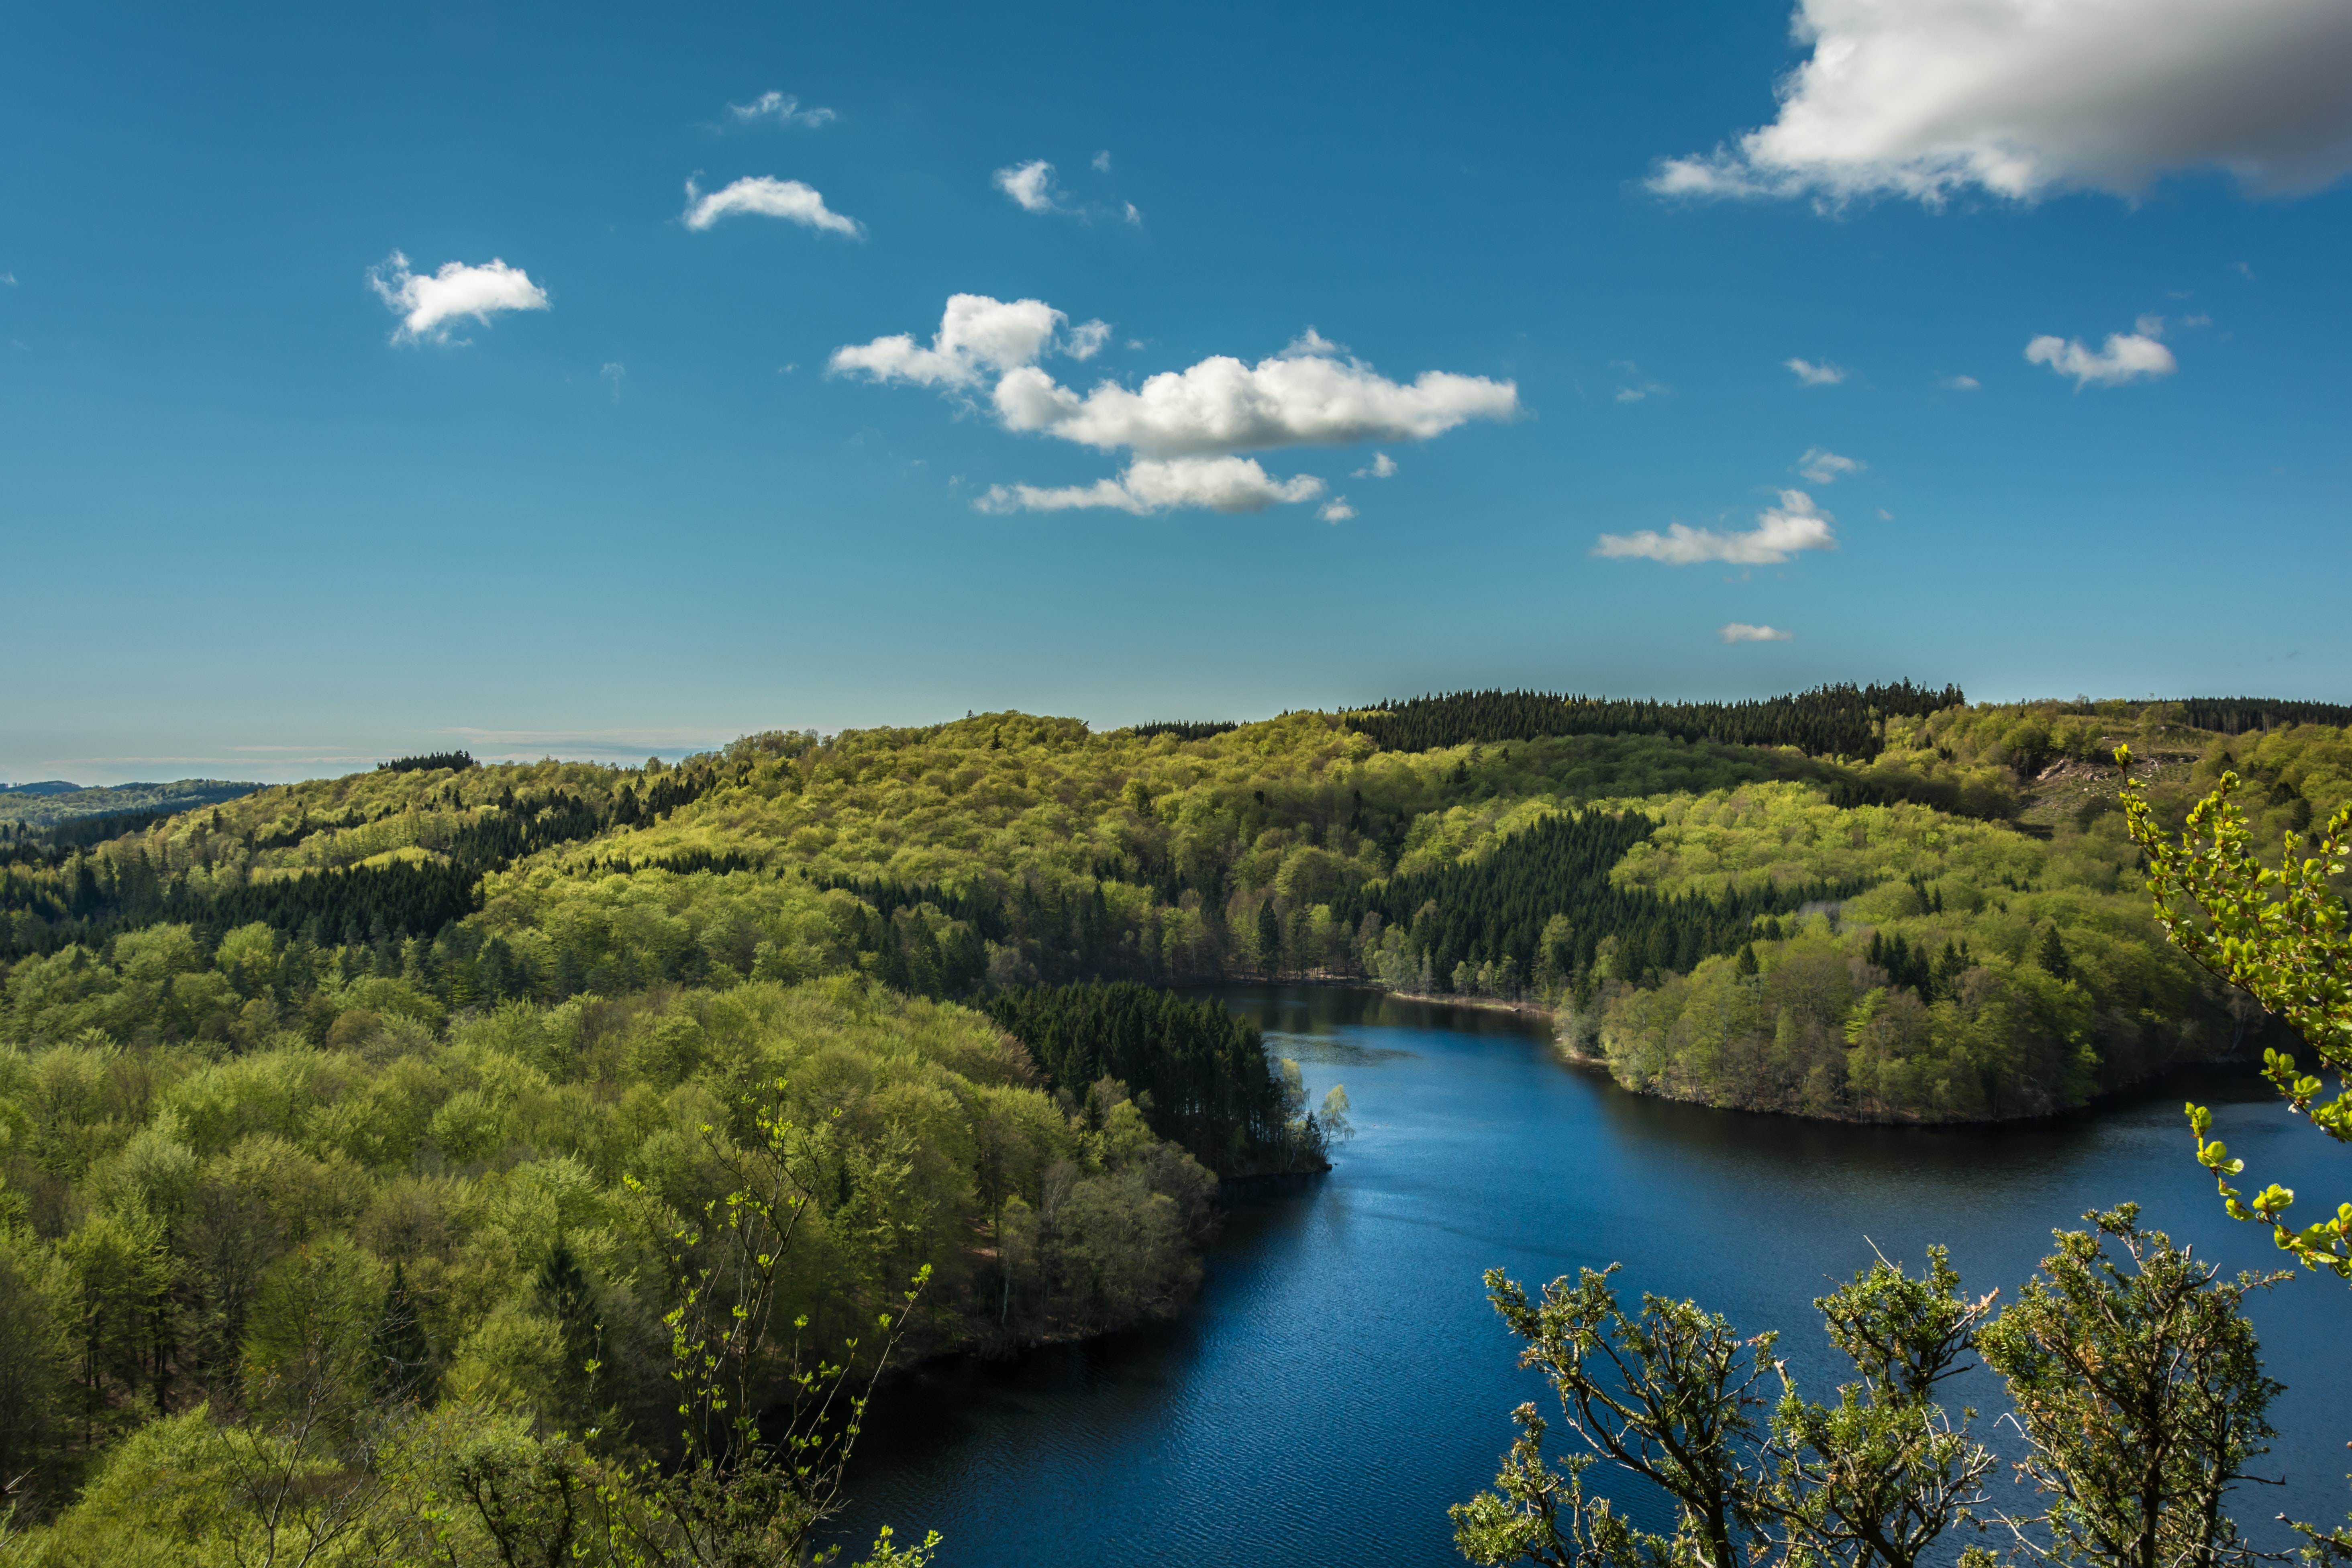 Green forests around a river under a blue sky with several clouds